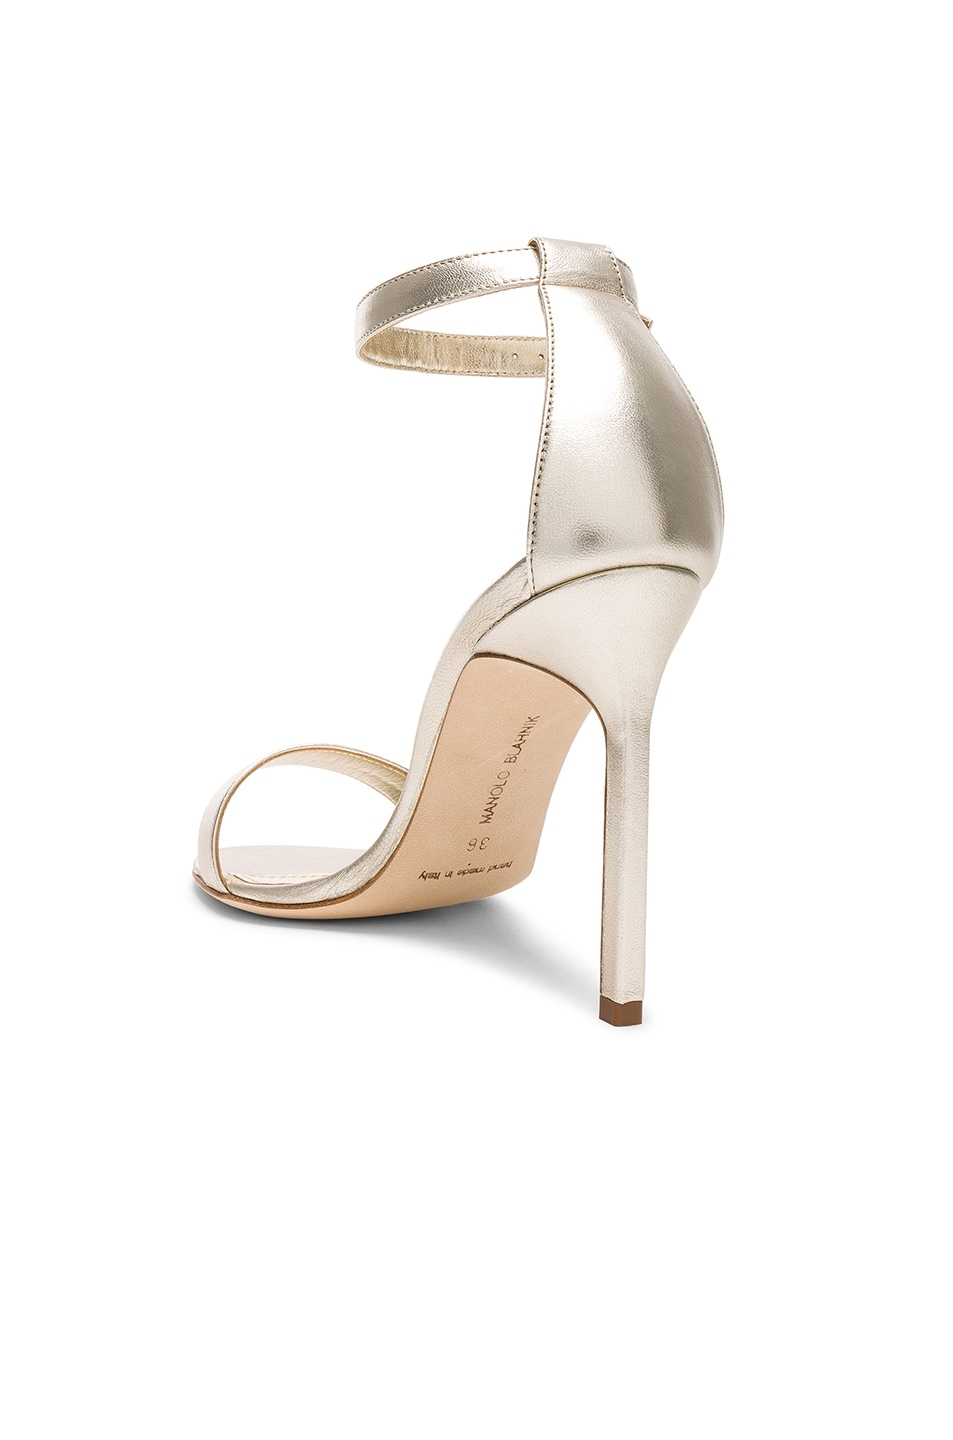 Image 3 of Manolo Blahnik Leather Chaos 105 Heels in Light Gold Leather